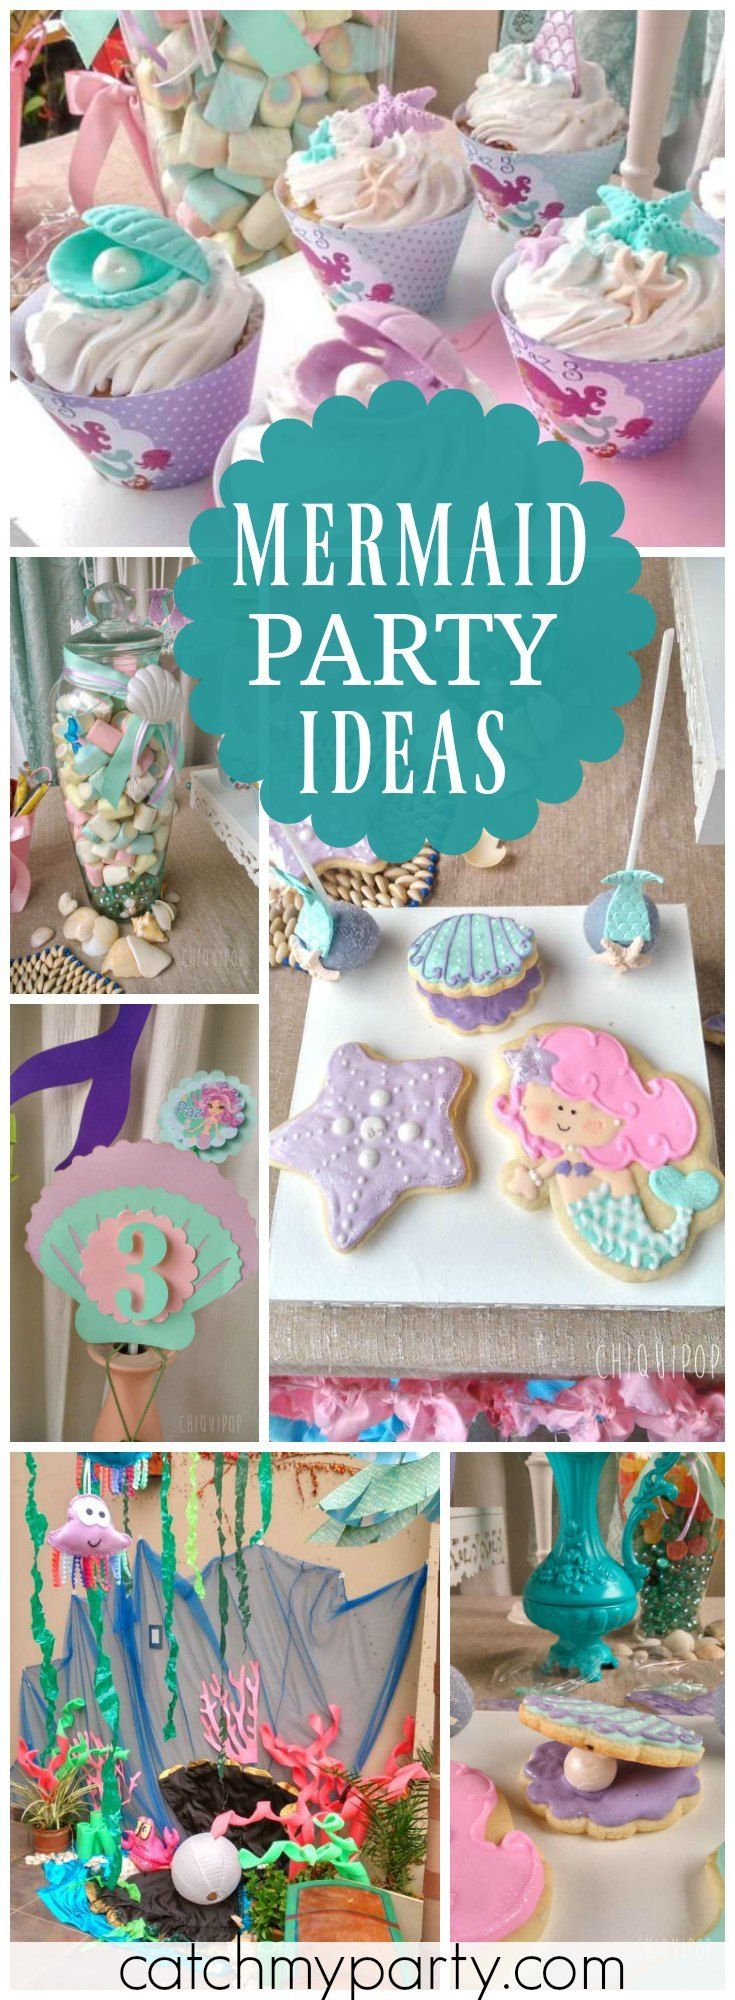 You have to see this lovely purple and teal under the sea mermaid party! See more party ideas at Catchmyparty.com!